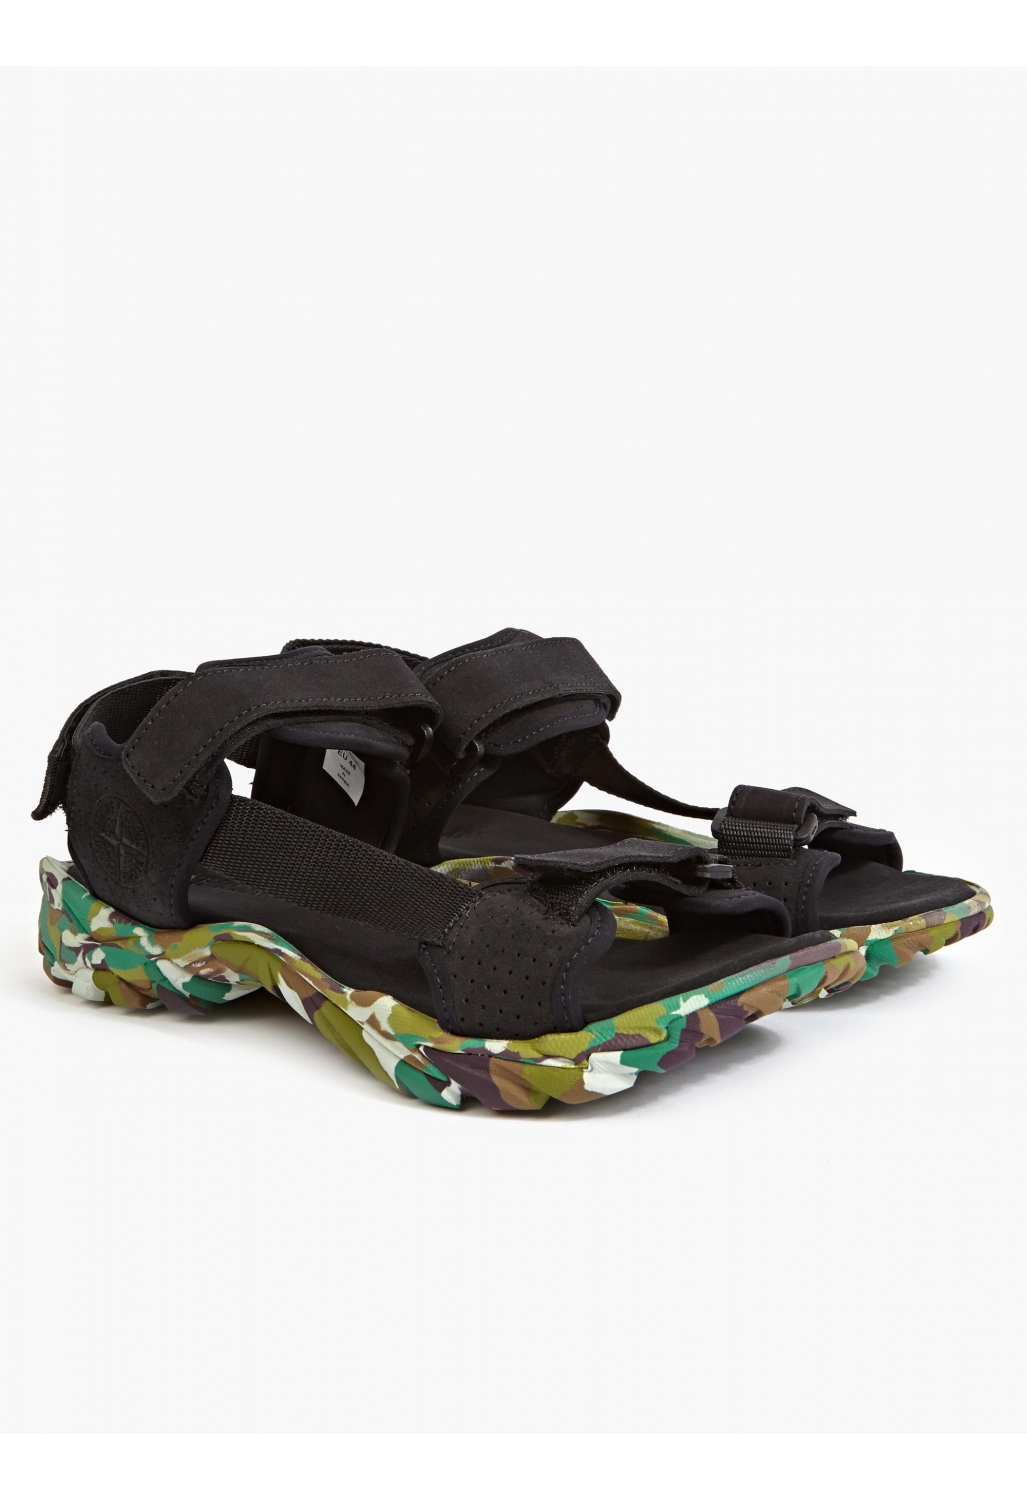 Stone Island Men S Camouflage Suede Sandal In Green For